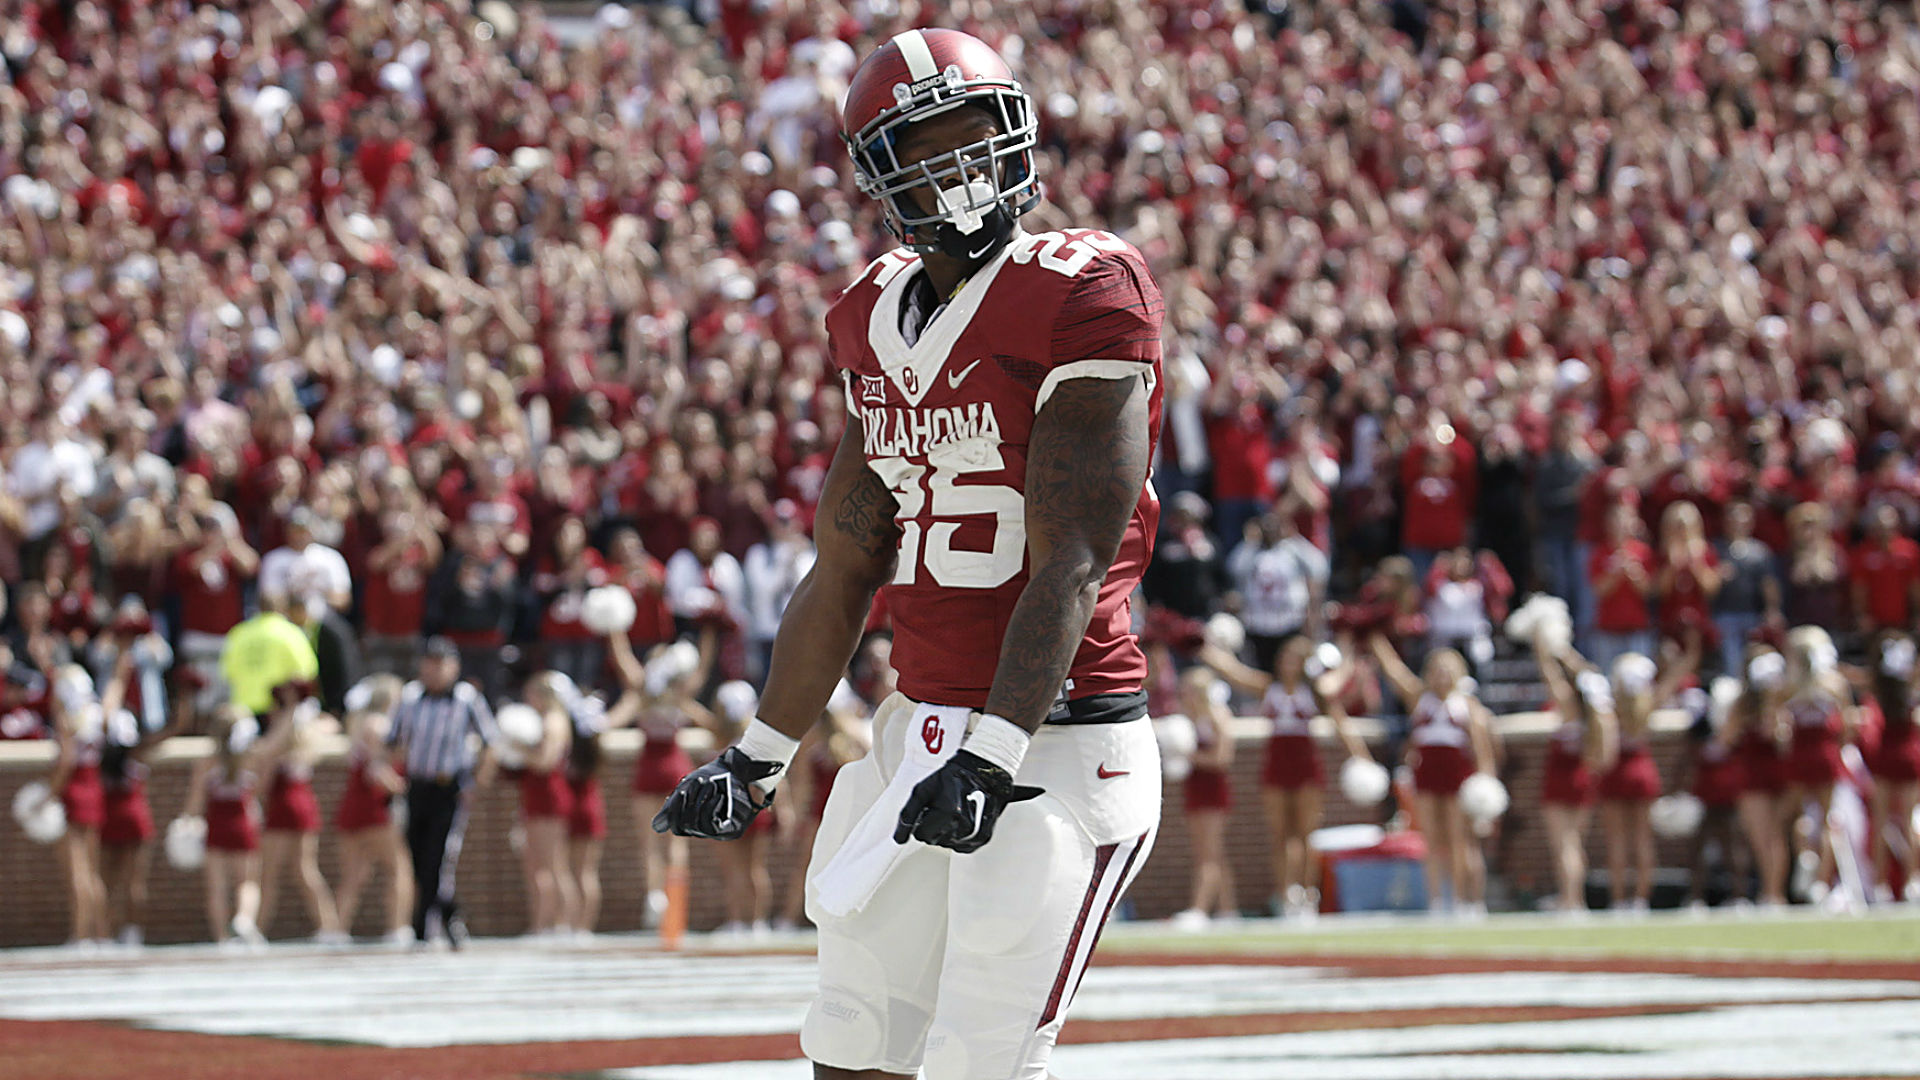 Court rules to release video of Oklahoma RB Joe Mixon punching 1920x1080